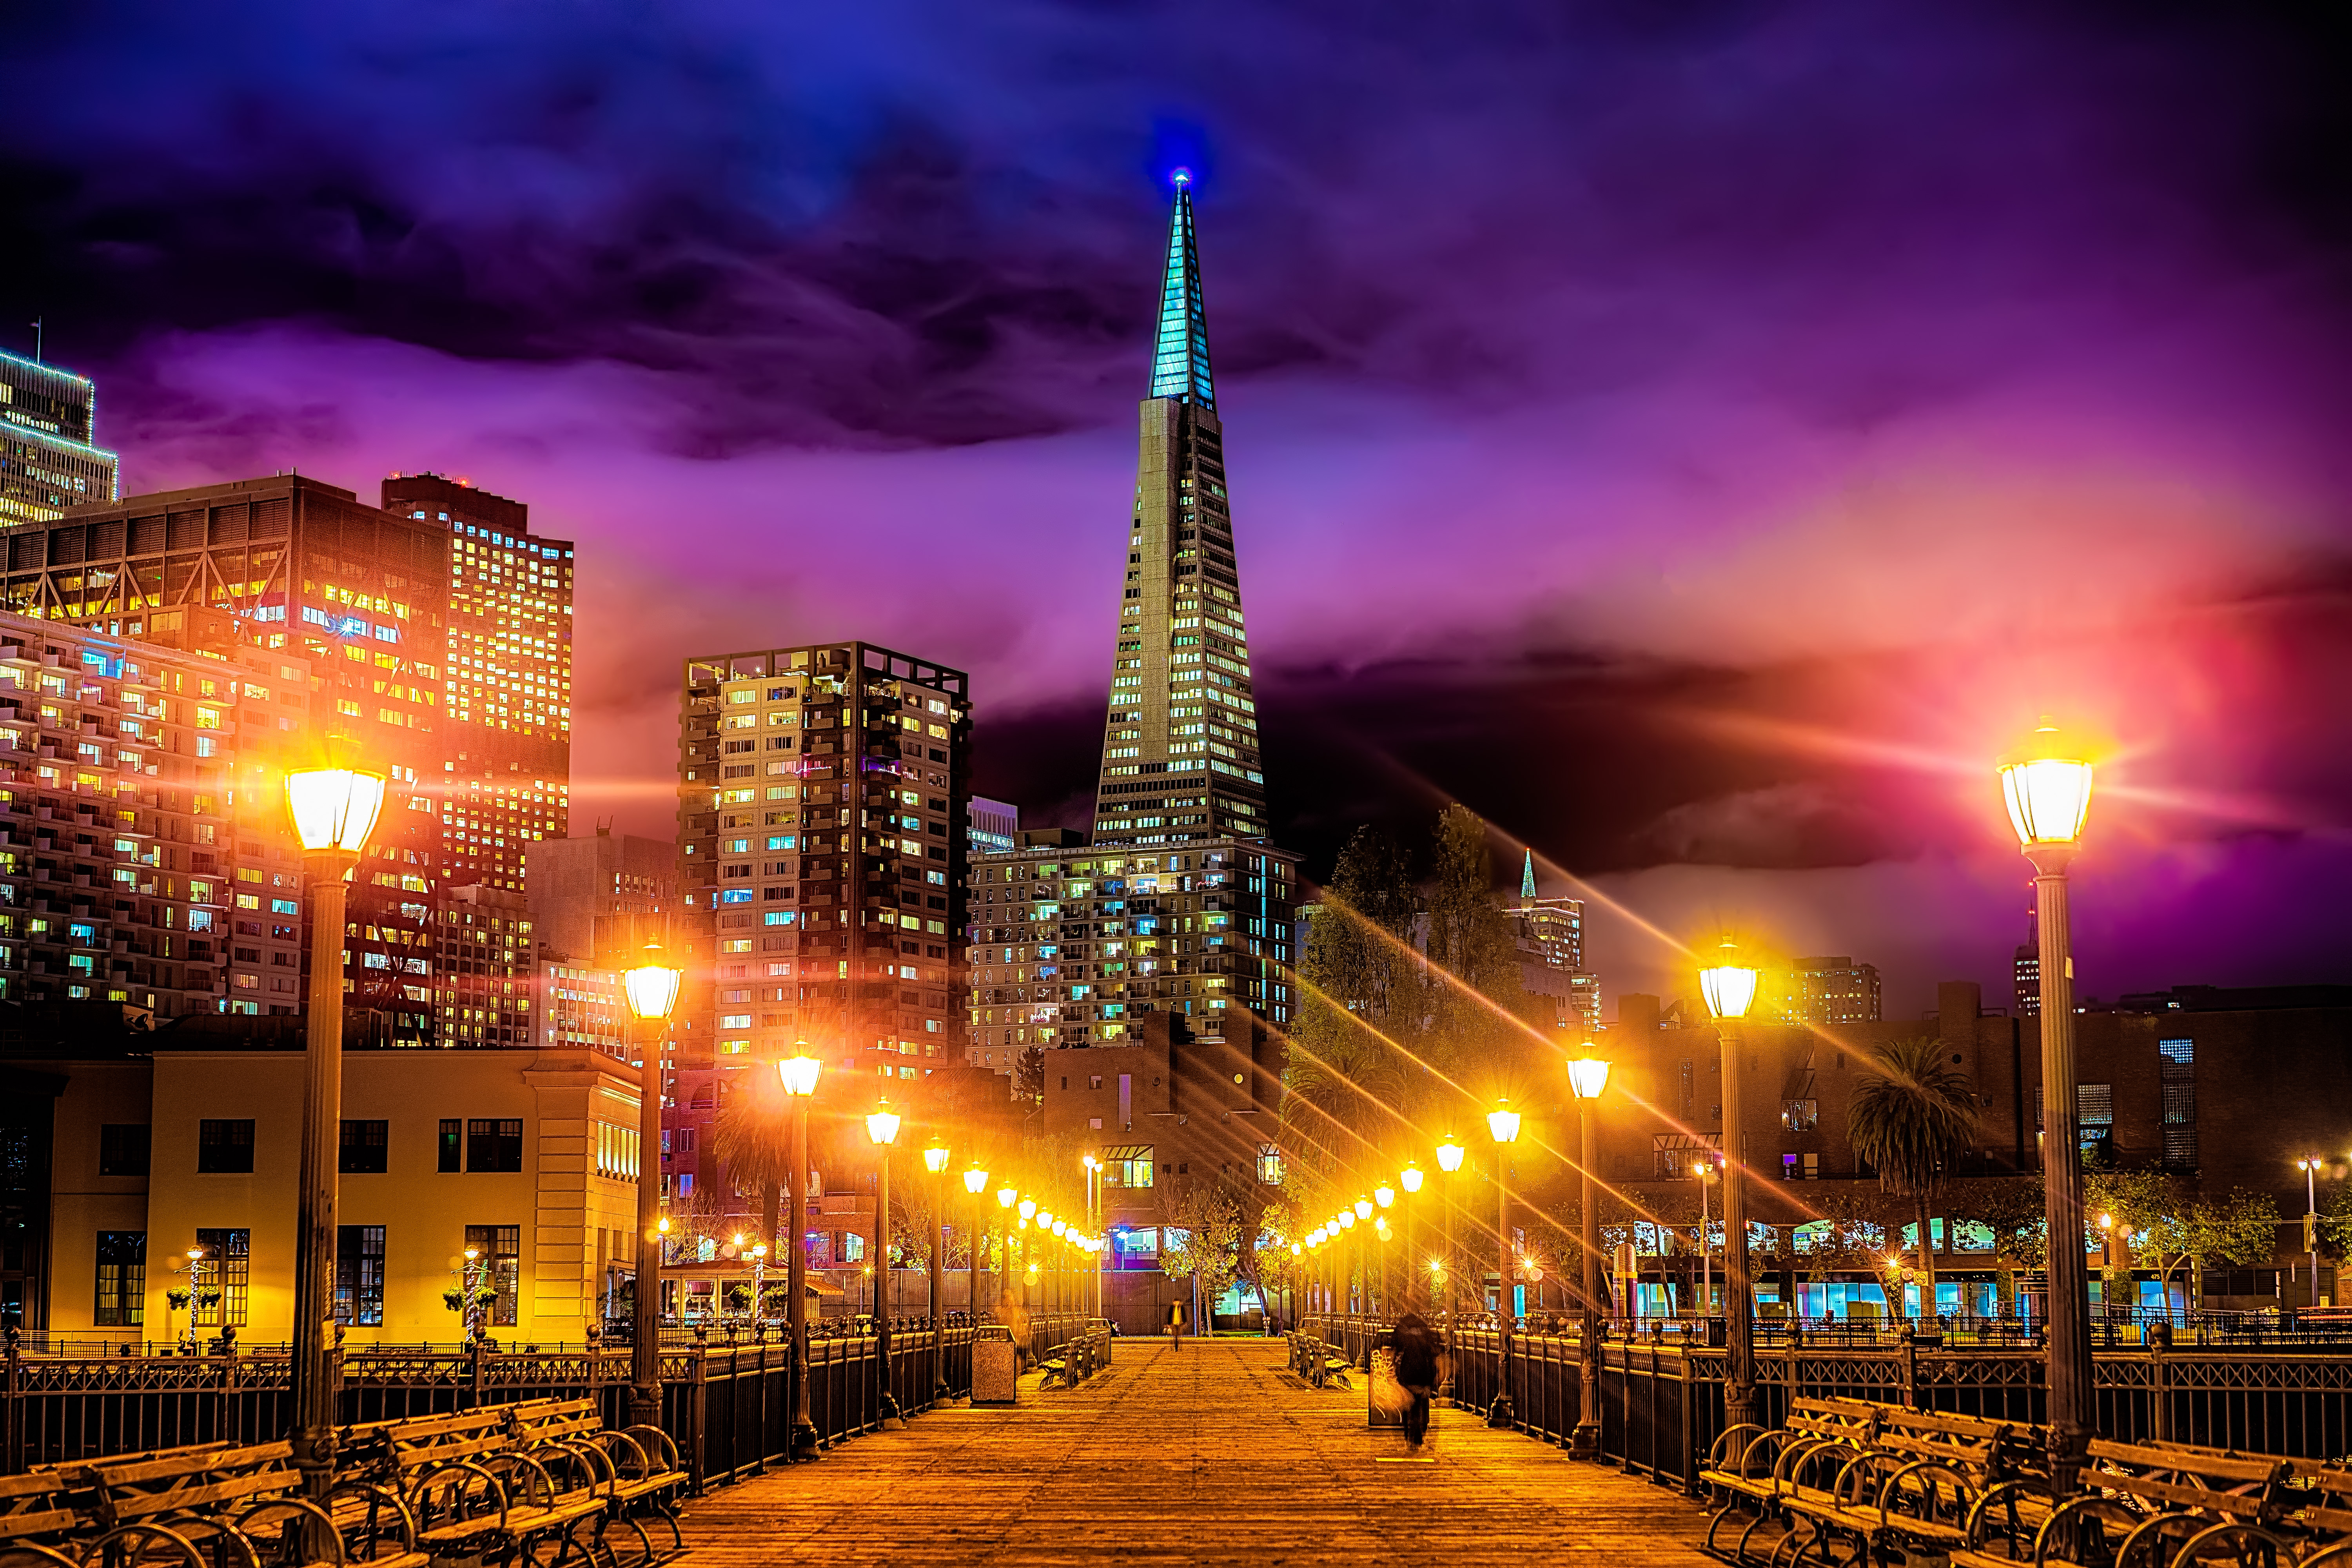 The Transamerica Pyramid is the tallest skyscraper in the San Francisco skyline.